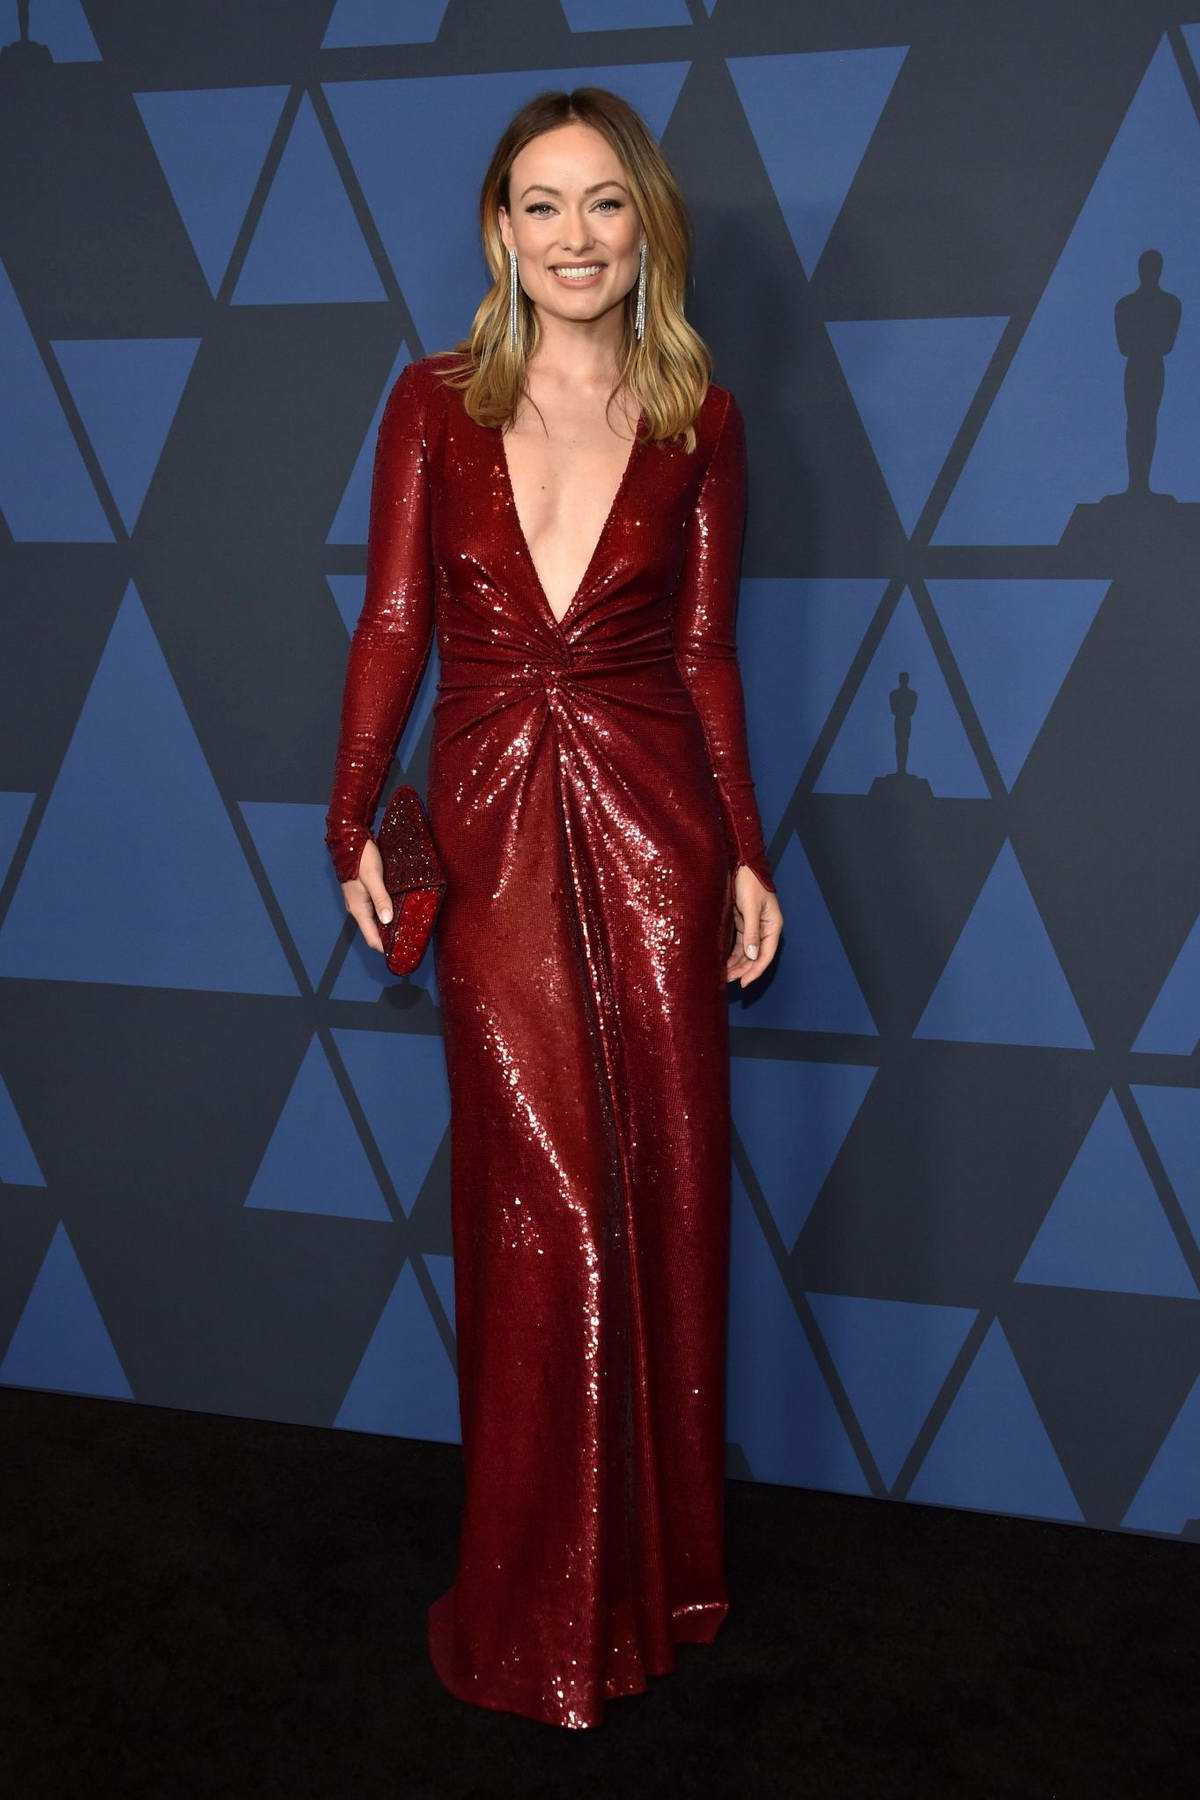 Olivia Wilde attends the Academy of Motion Picture Arts and Sciences' 11th Annual Governors Awards in Hollywood, California